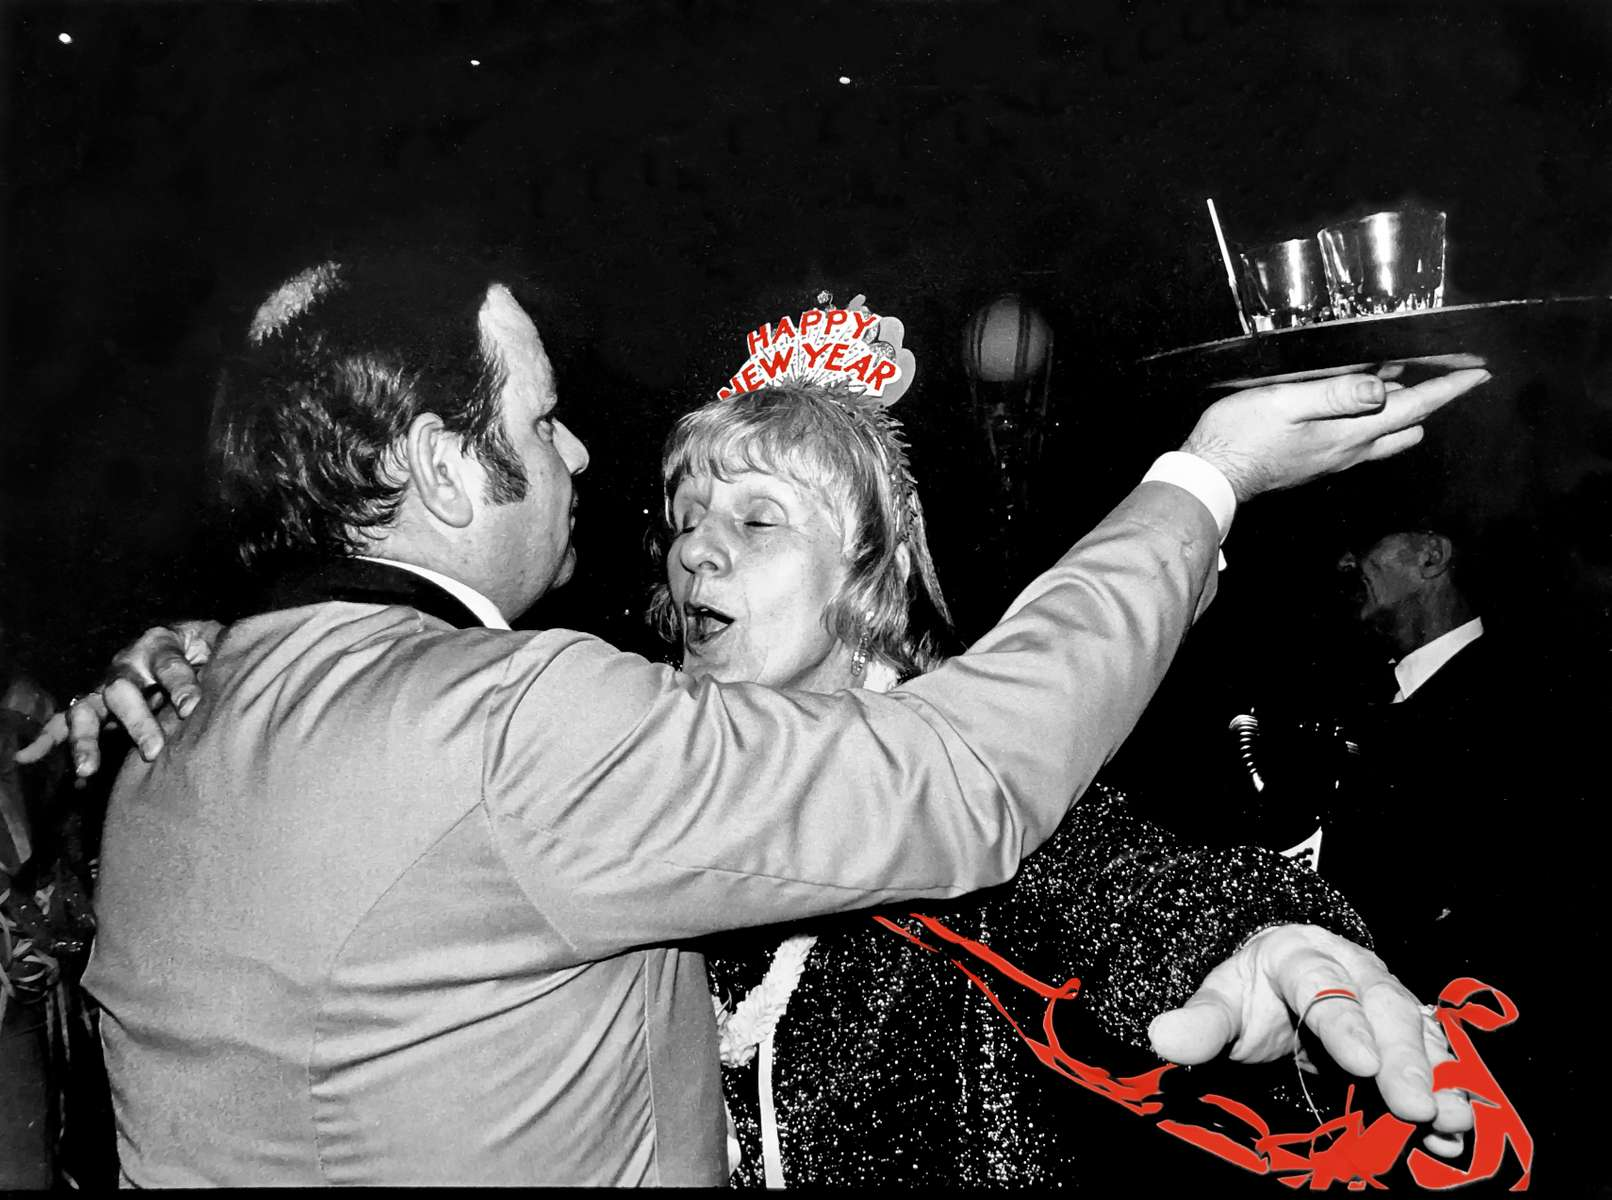 The last New Year's Eve celebration ever at the Marlboro-Blenheim Hotel, Atlantic City, in 1977, before the historic structure was demolished the following fall. When it was built in 1902-1906, the Marlboro-Blenheim was the largest reinforced concrete building in the world. Most of the people present on this night were devoted guests who returned year after year to celebrate with decades-old friends. Thanks to fellow photographer and good friend Roz Gerstein, who accompanied me and generated the idea for this photo expedition. Jon Chase photo